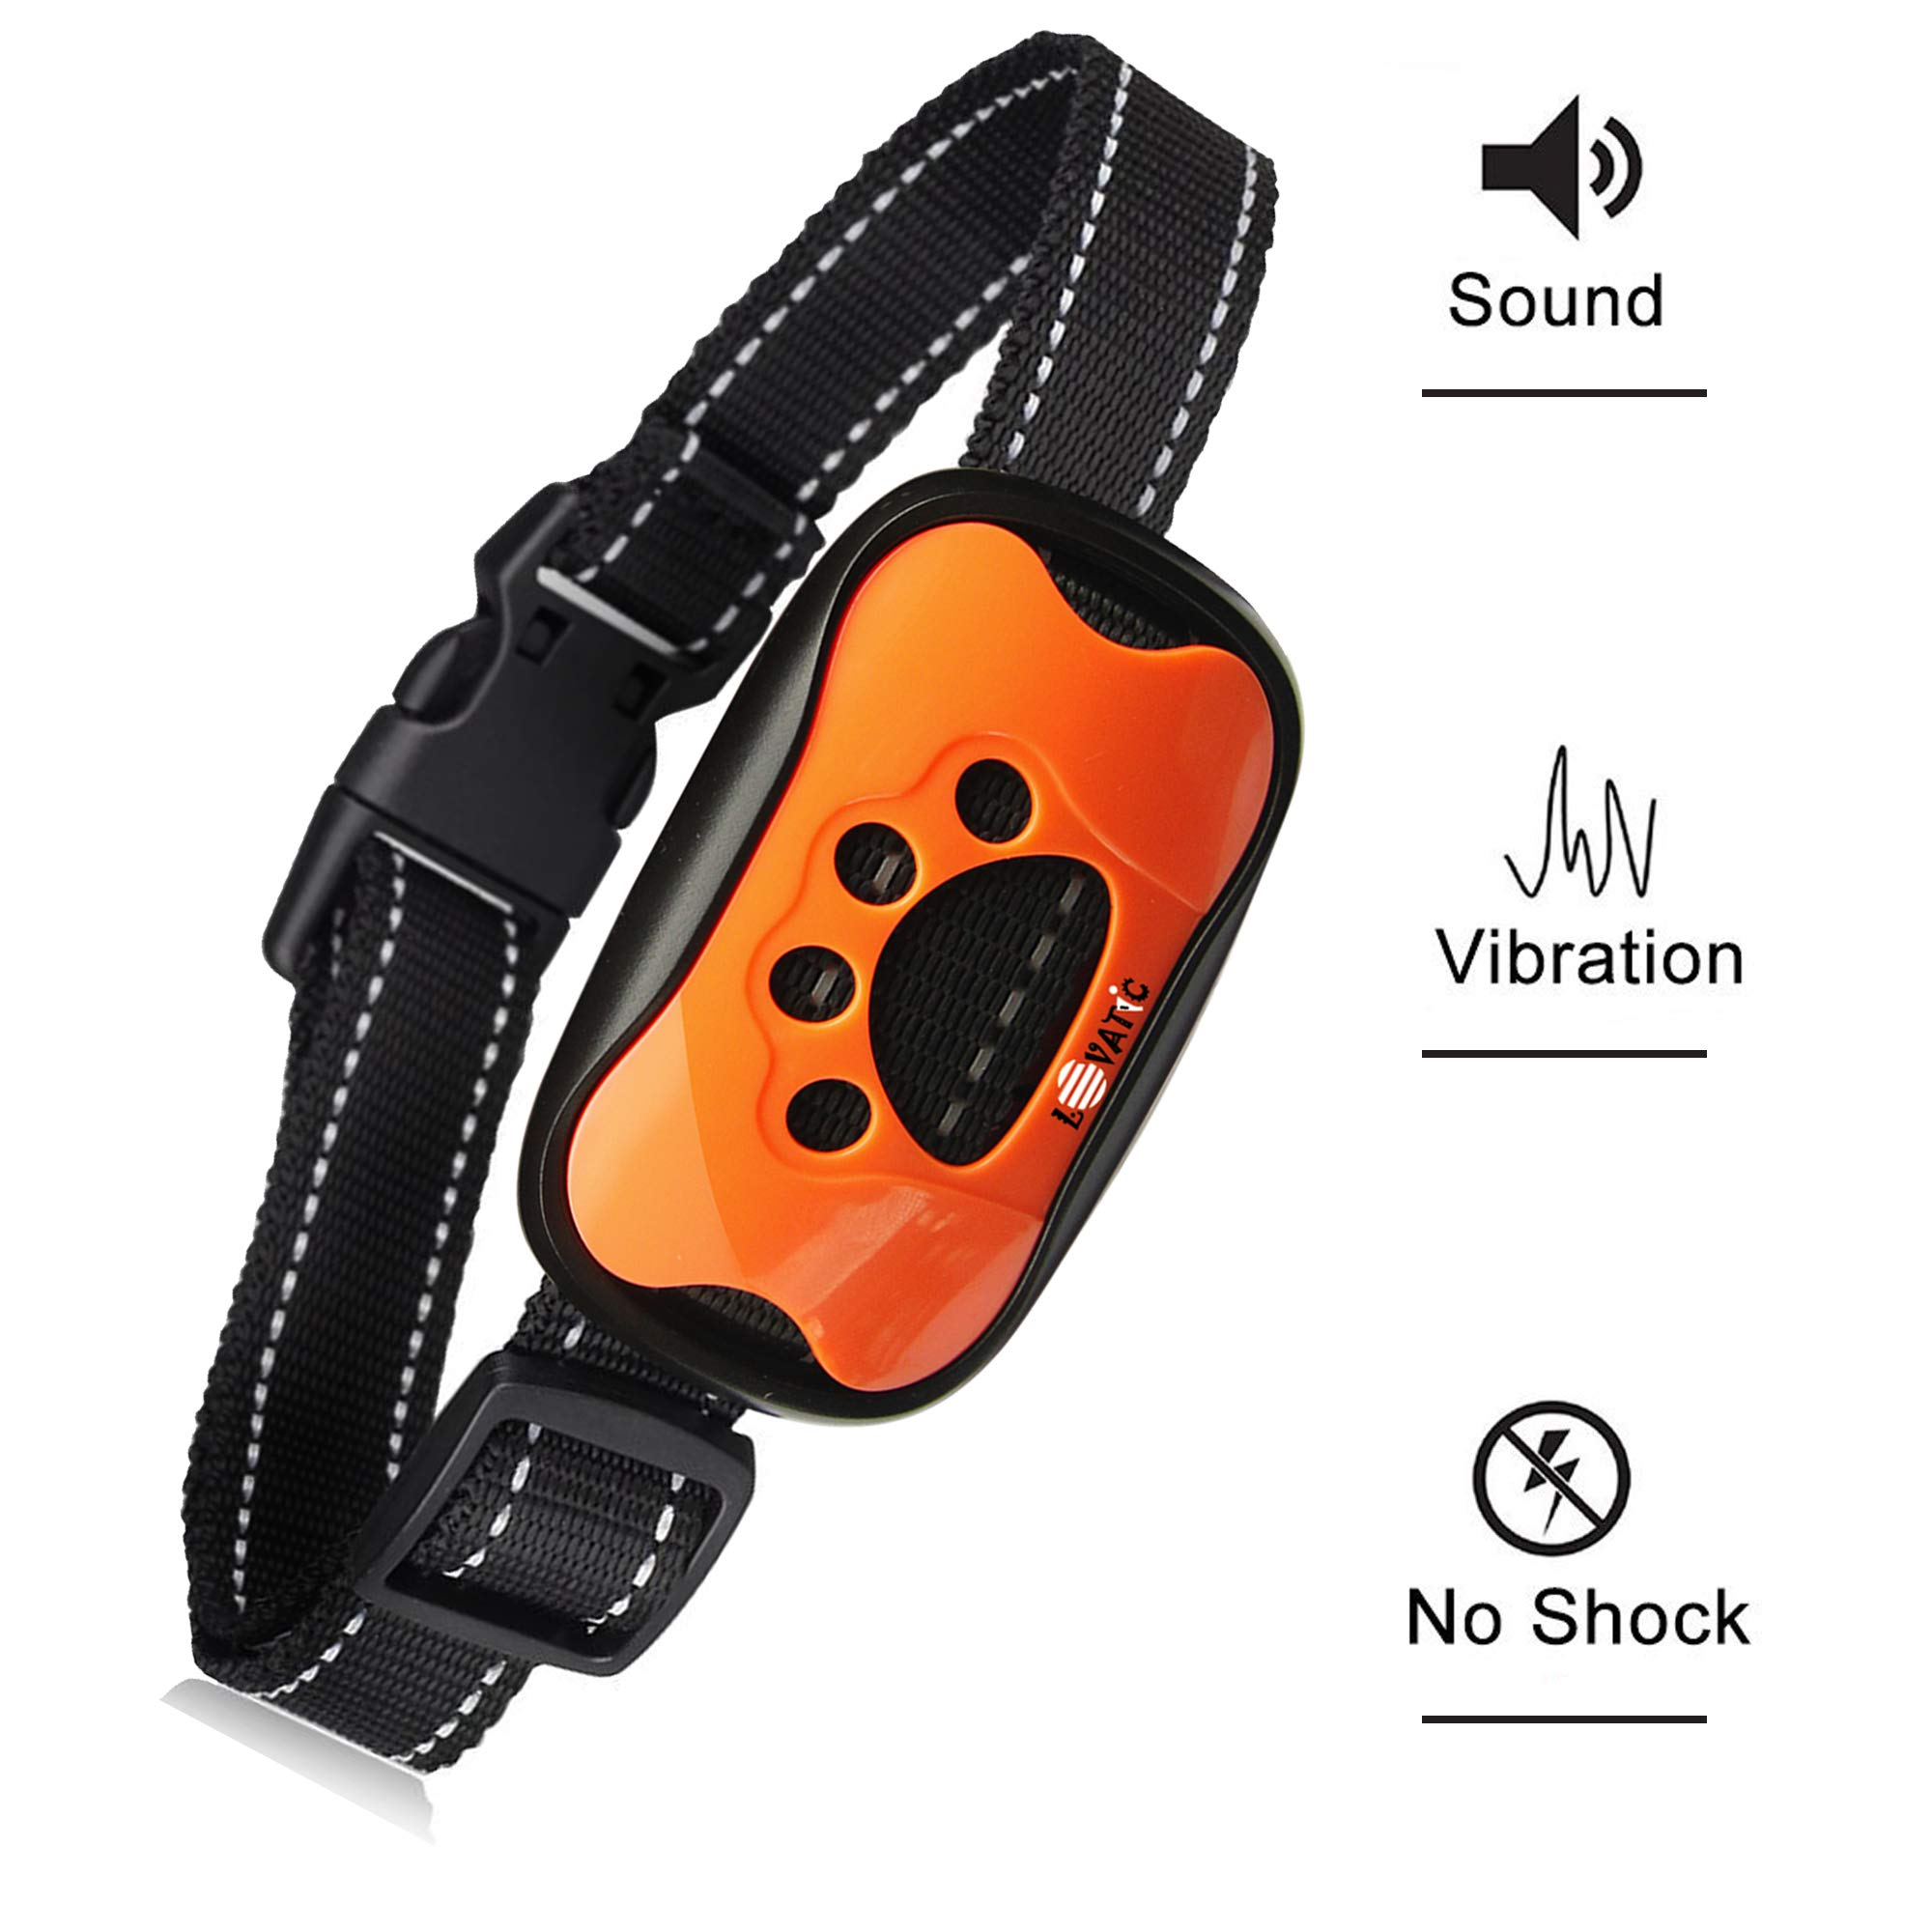 LOVATIC Anti Bark Collar - Humane, No Shock Dog Bark Collar - Training Collar Control Barking Vibration & Sound Stimuli - 7 Levels Sensitivity Adjustment